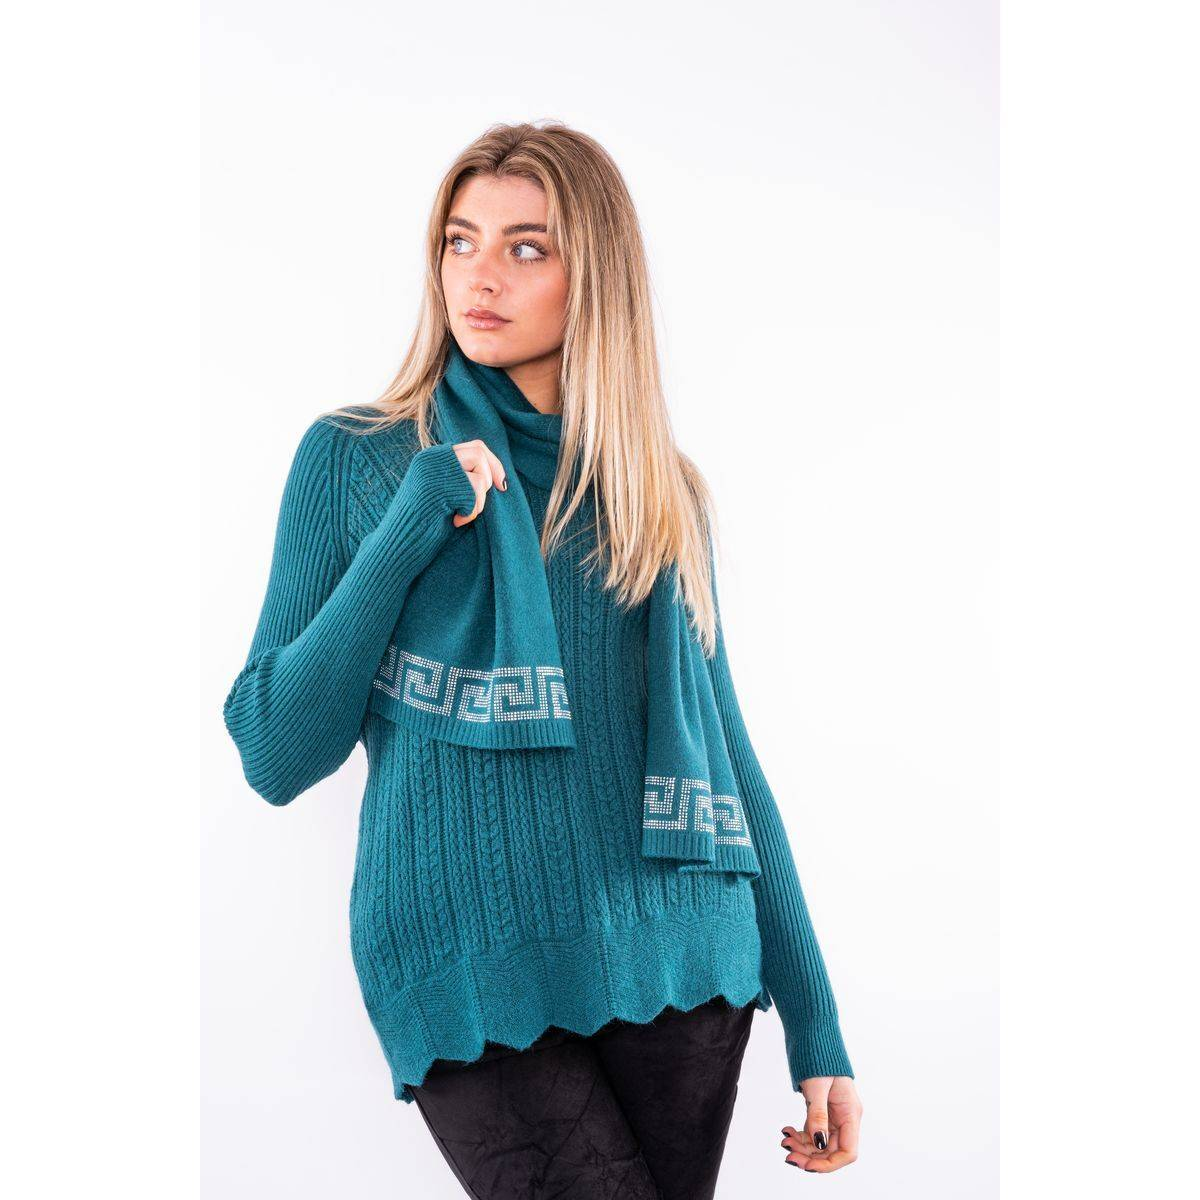 Textured jumper with sparkle scarf Lucy Sparks